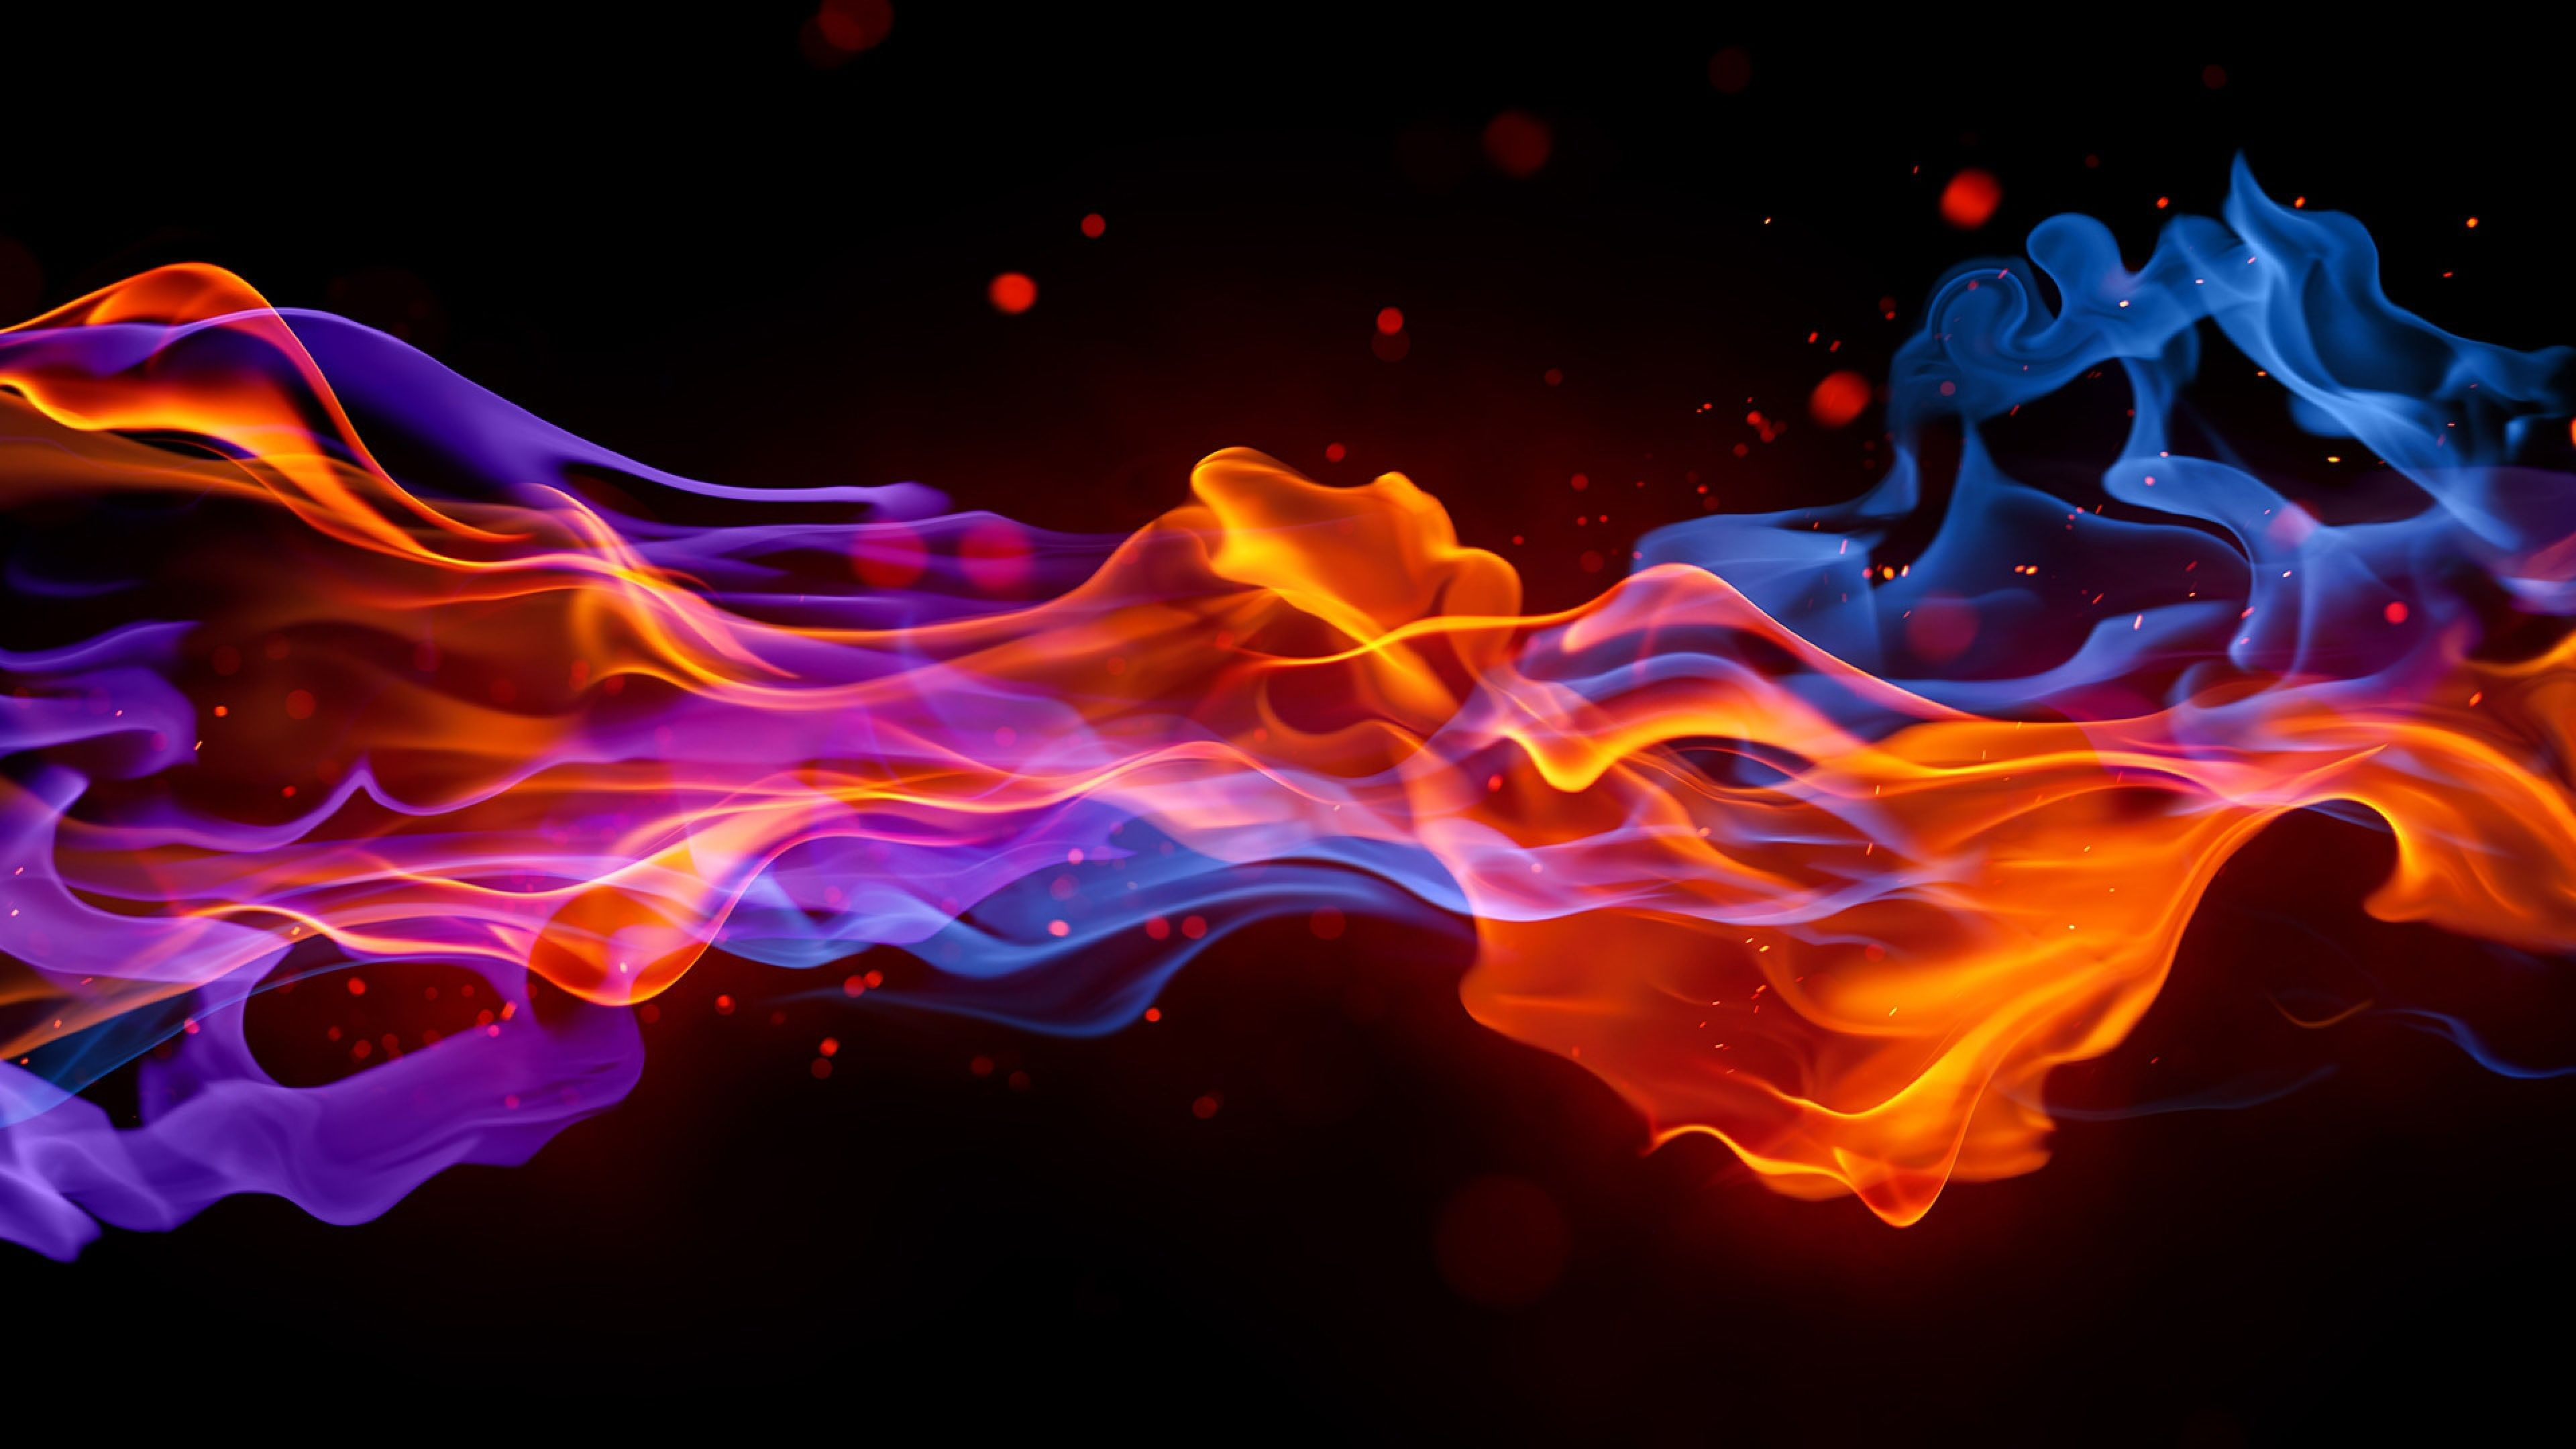 26 Smoke Backgrounds HQ Muscowequan Edgars